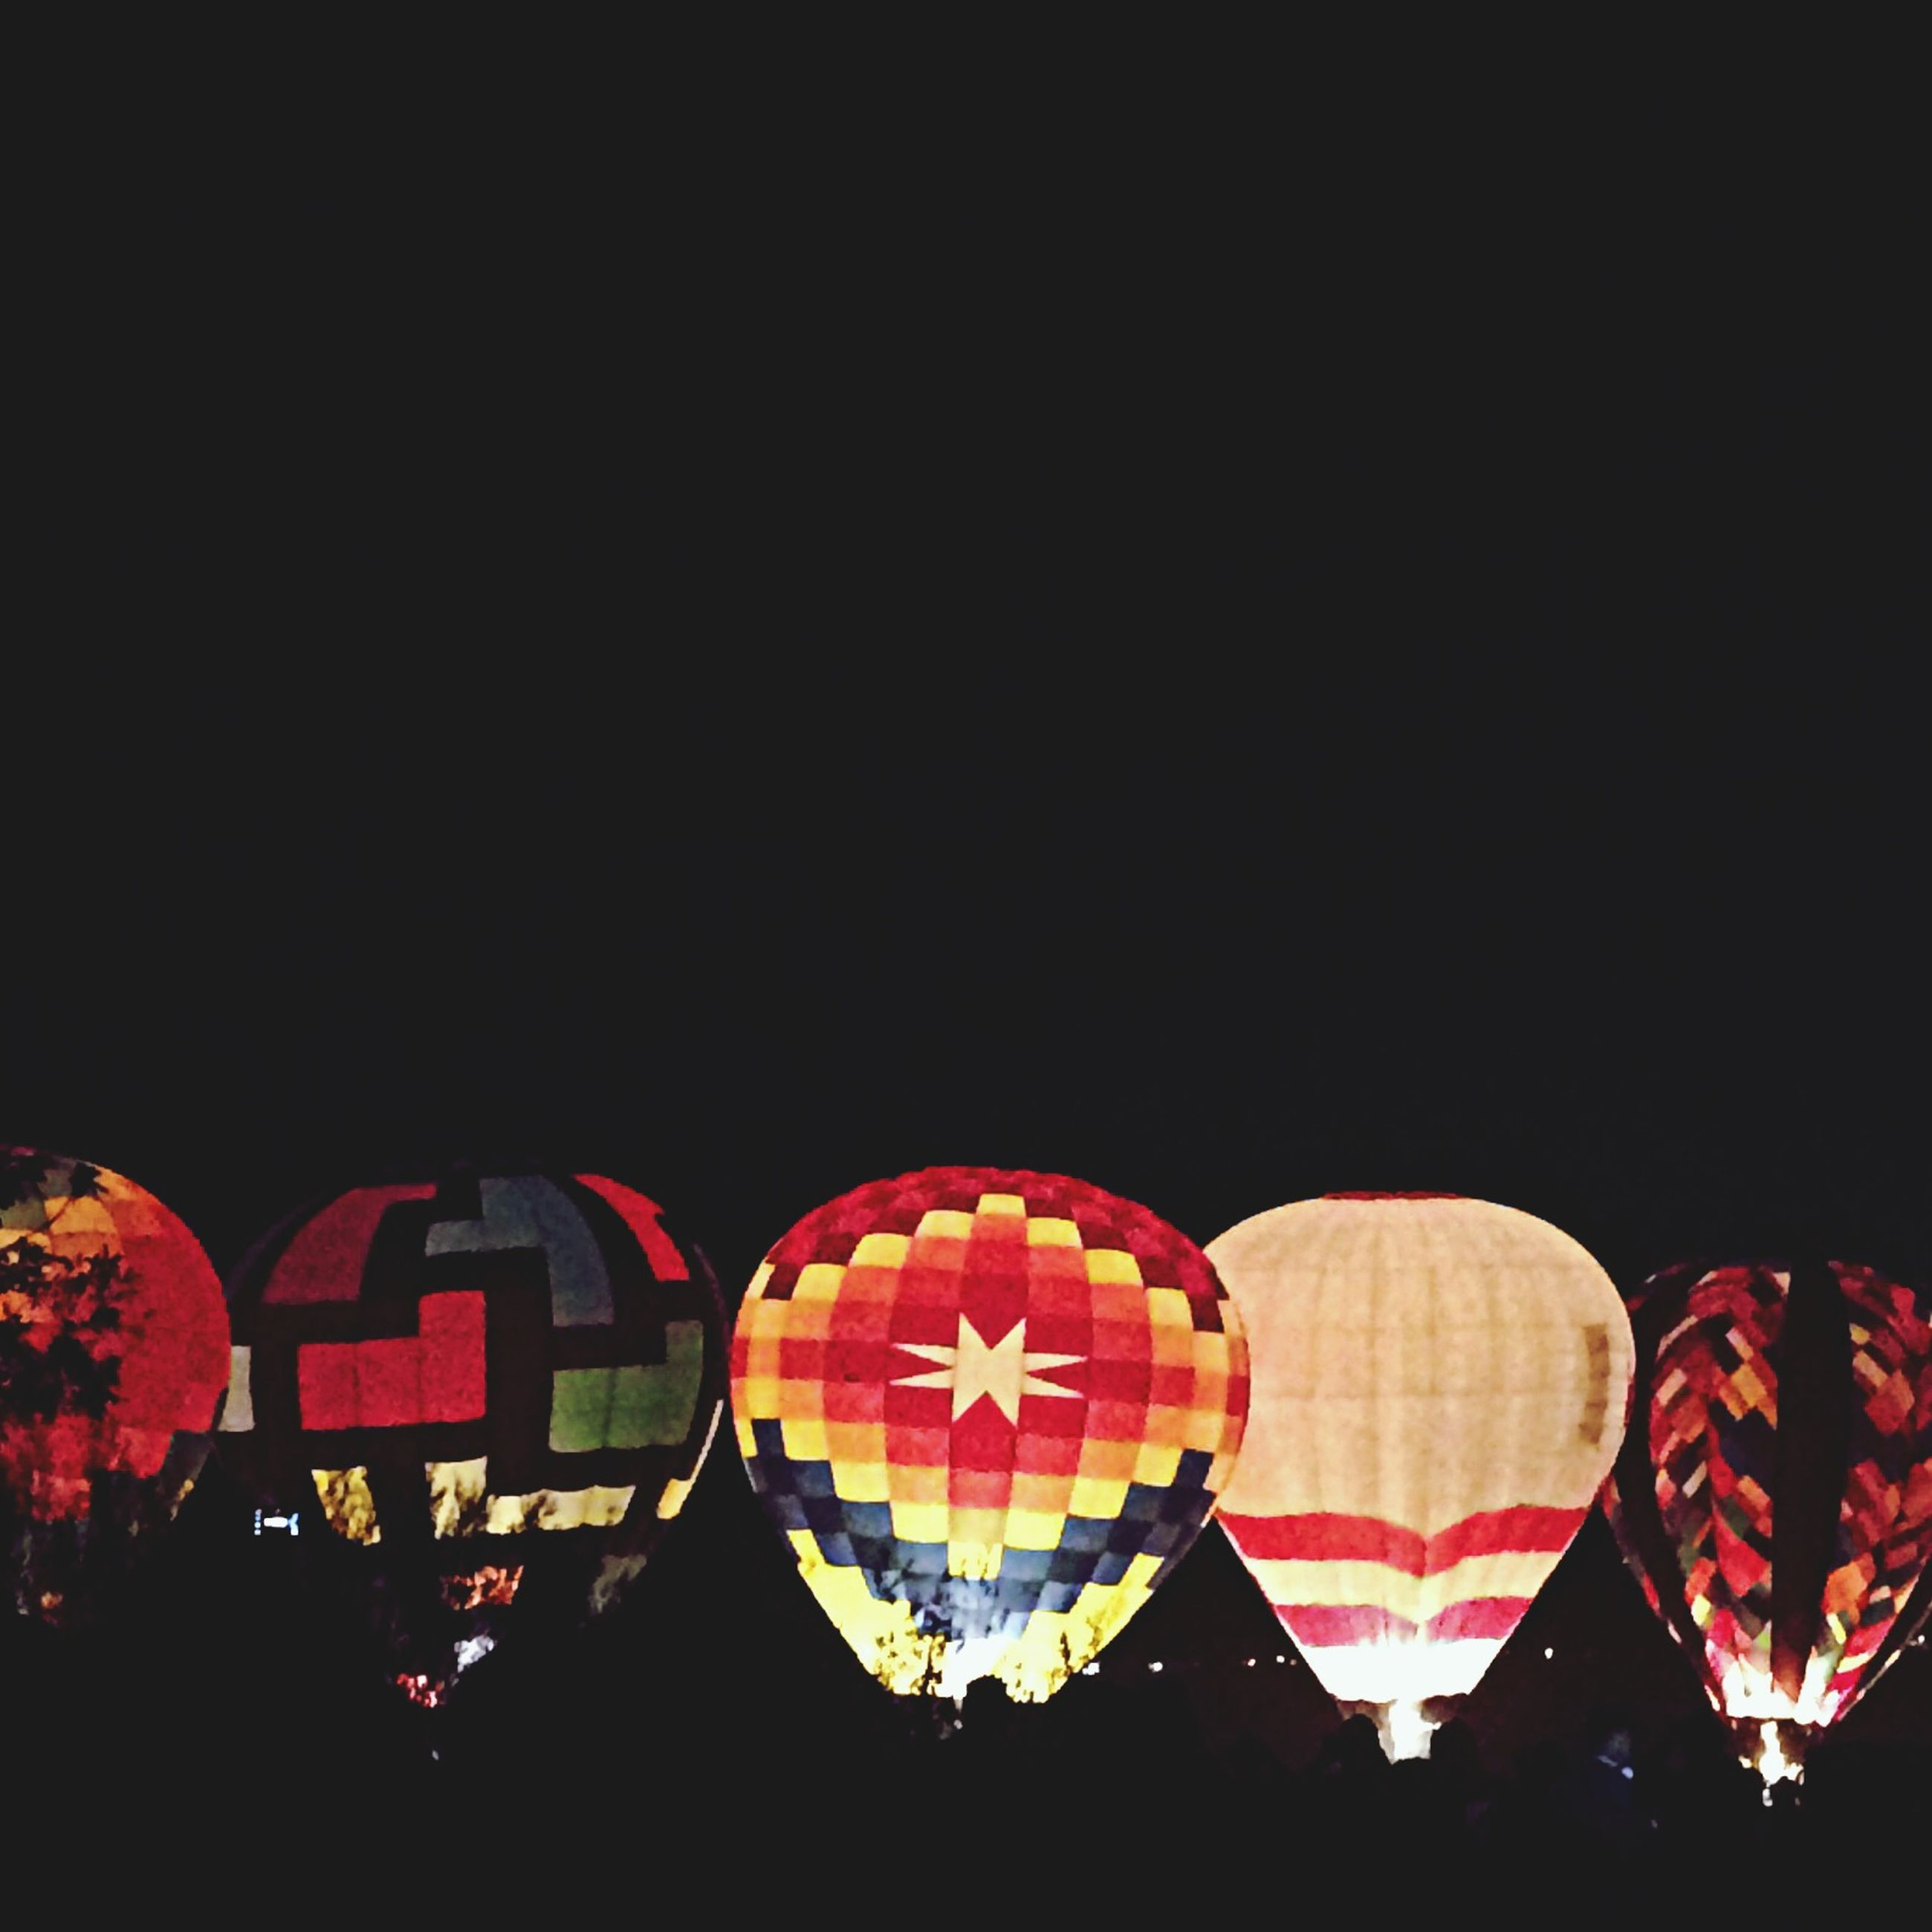 copy space, red, clear sky, night, illuminated, in a row, multi colored, side by side, lighting equipment, no people, decoration, celebration, dark, lantern, order, outdoors, colorful, hanging, large group of objects, repetition